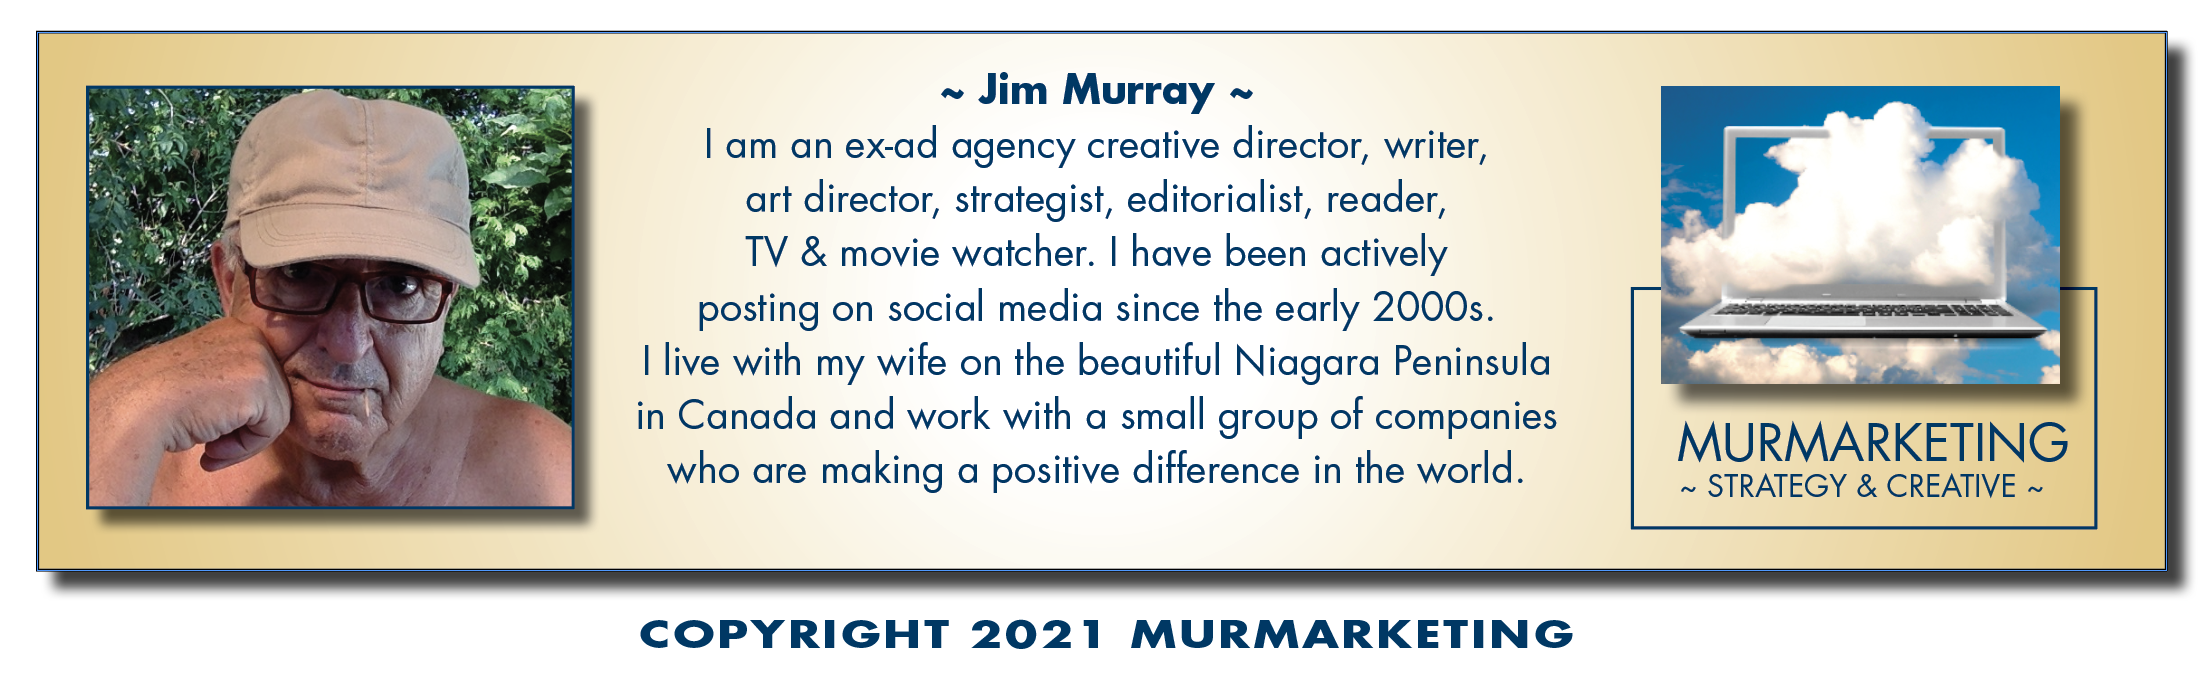 ~ Jim Murray ~ | am an ex-ad agency creative director, writer, art director, strategist, editorialist, reader, TV & movie watcher. | have been actively posting on social media since the early 2000s.  | live with my wife on the beautiful Niagara Peninsula  in Canada and work with a small group of companies MURMARKETING who are making a positive difference in the world. ~ STRATEGY & CREATIVE ~     COPYRIGHT 2021 MURMARKETING